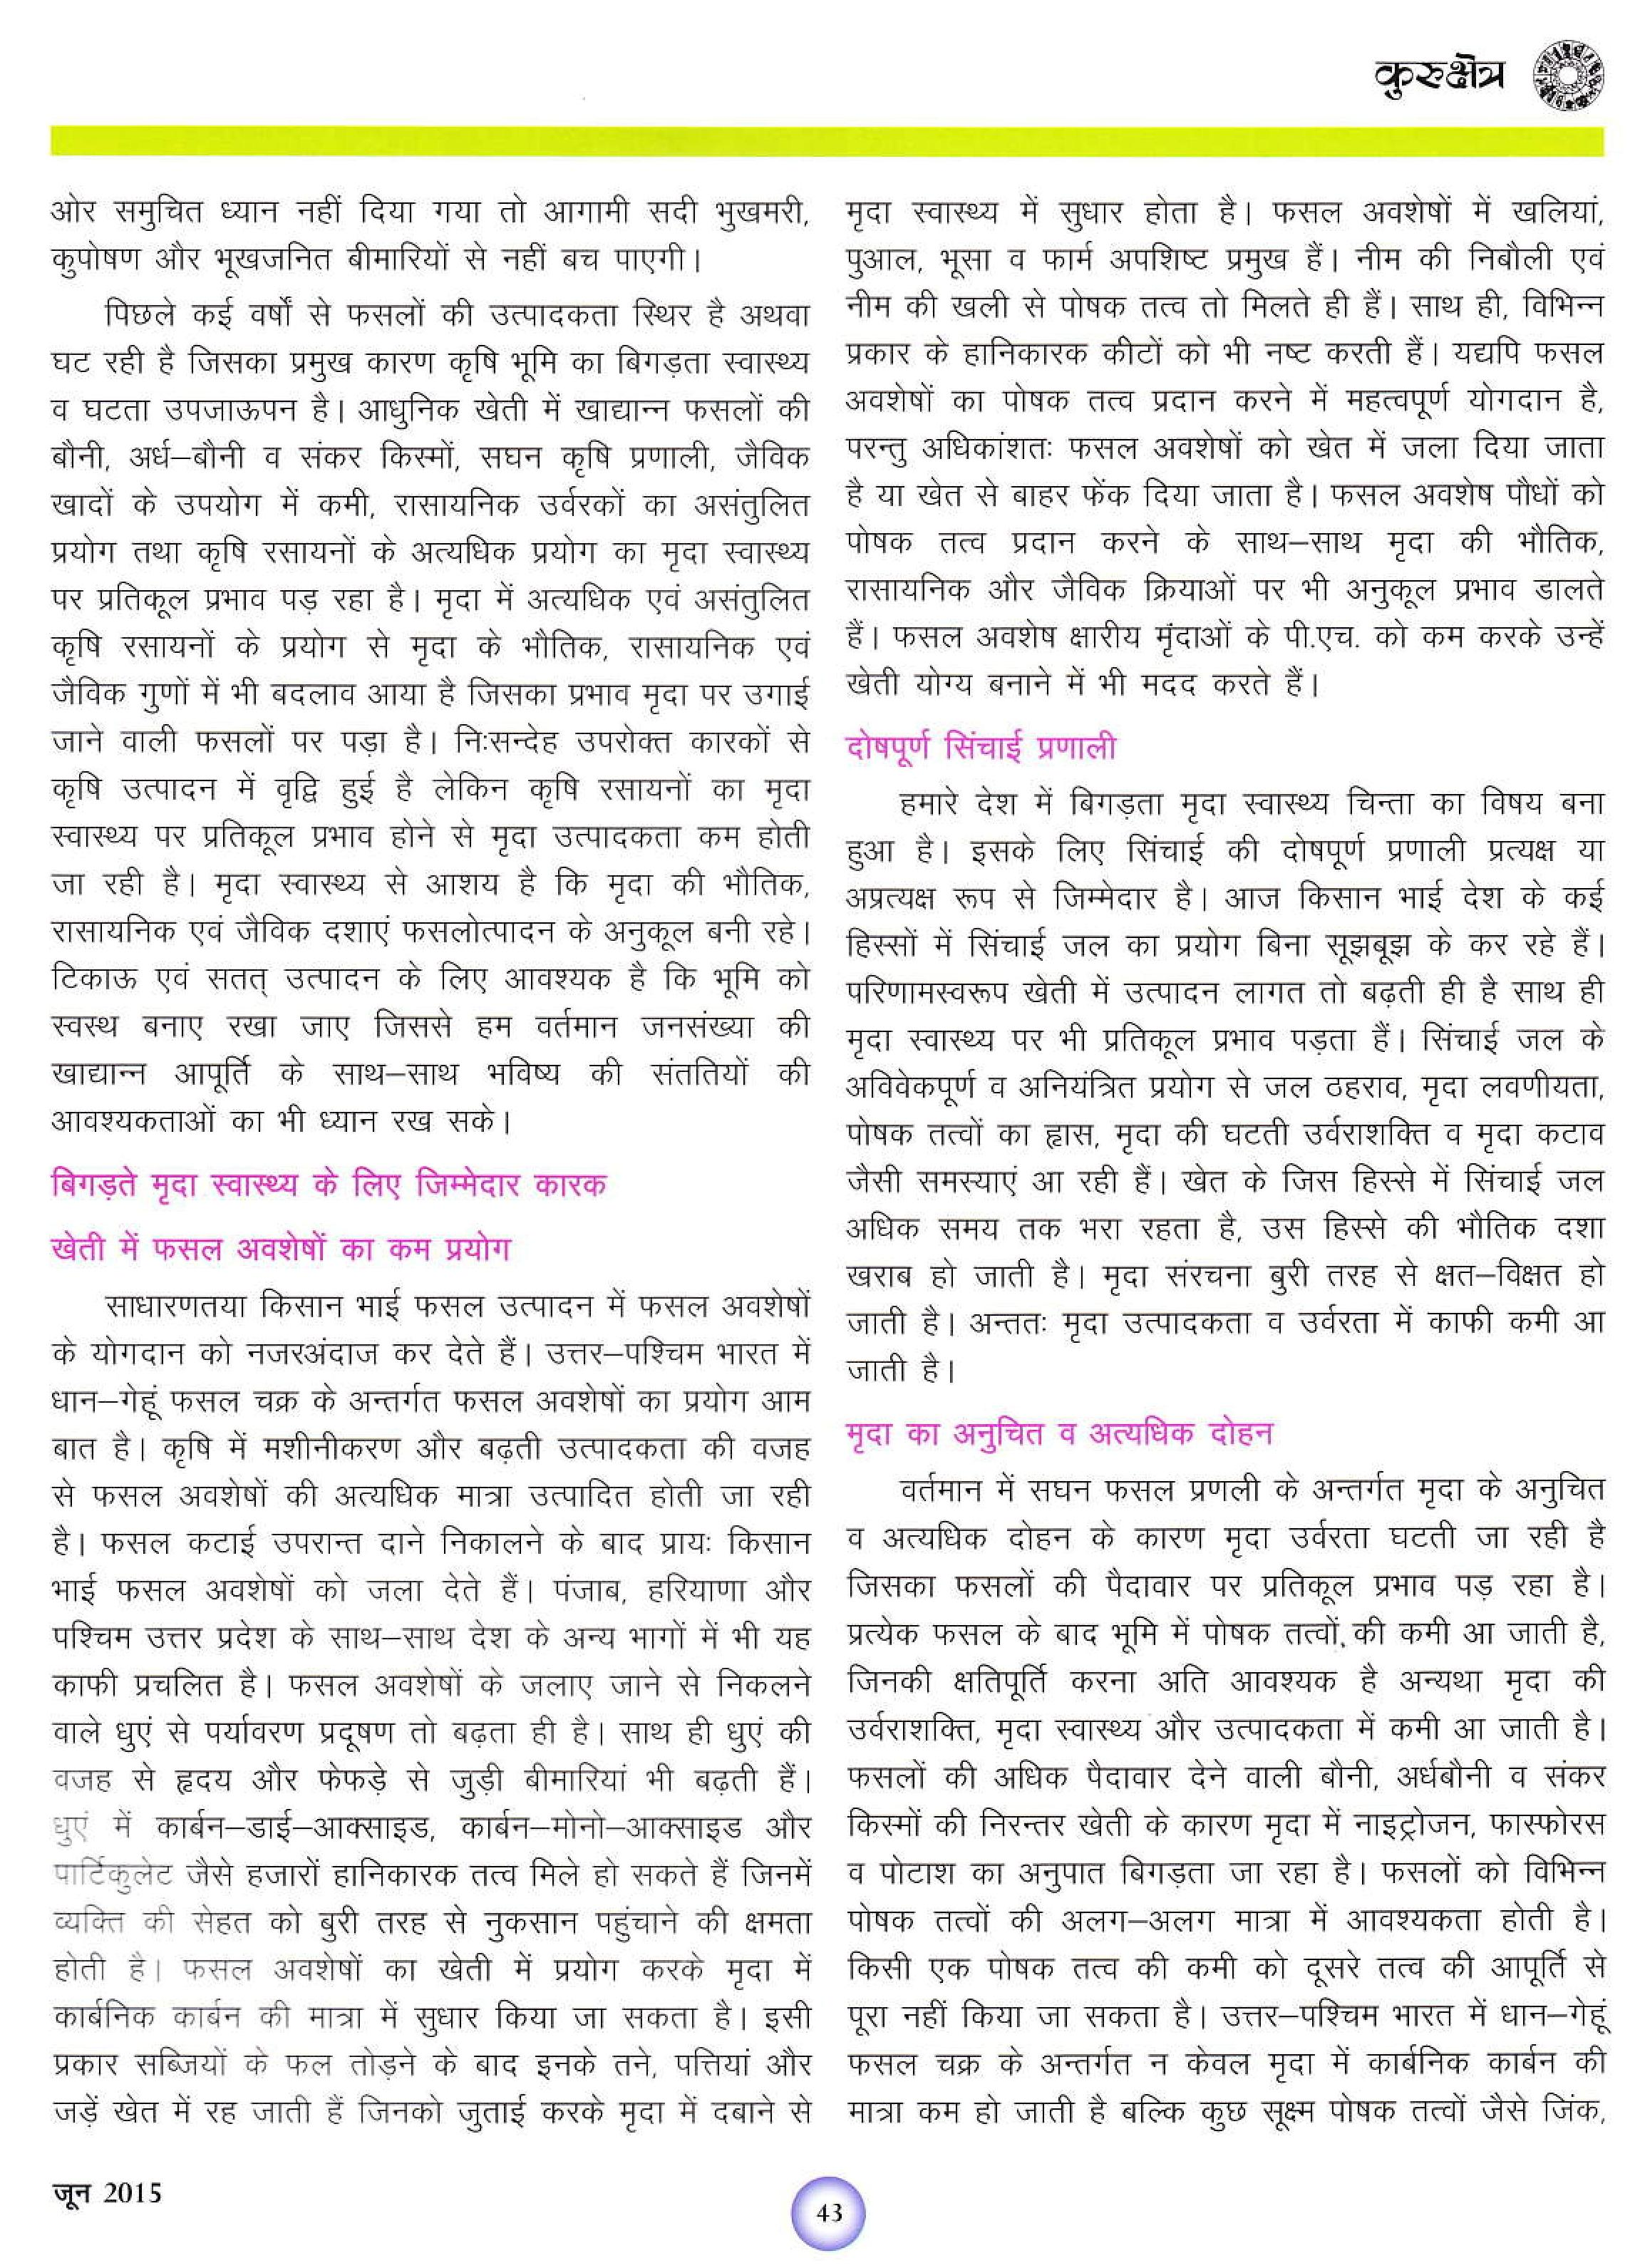 IMG_0013-page-002